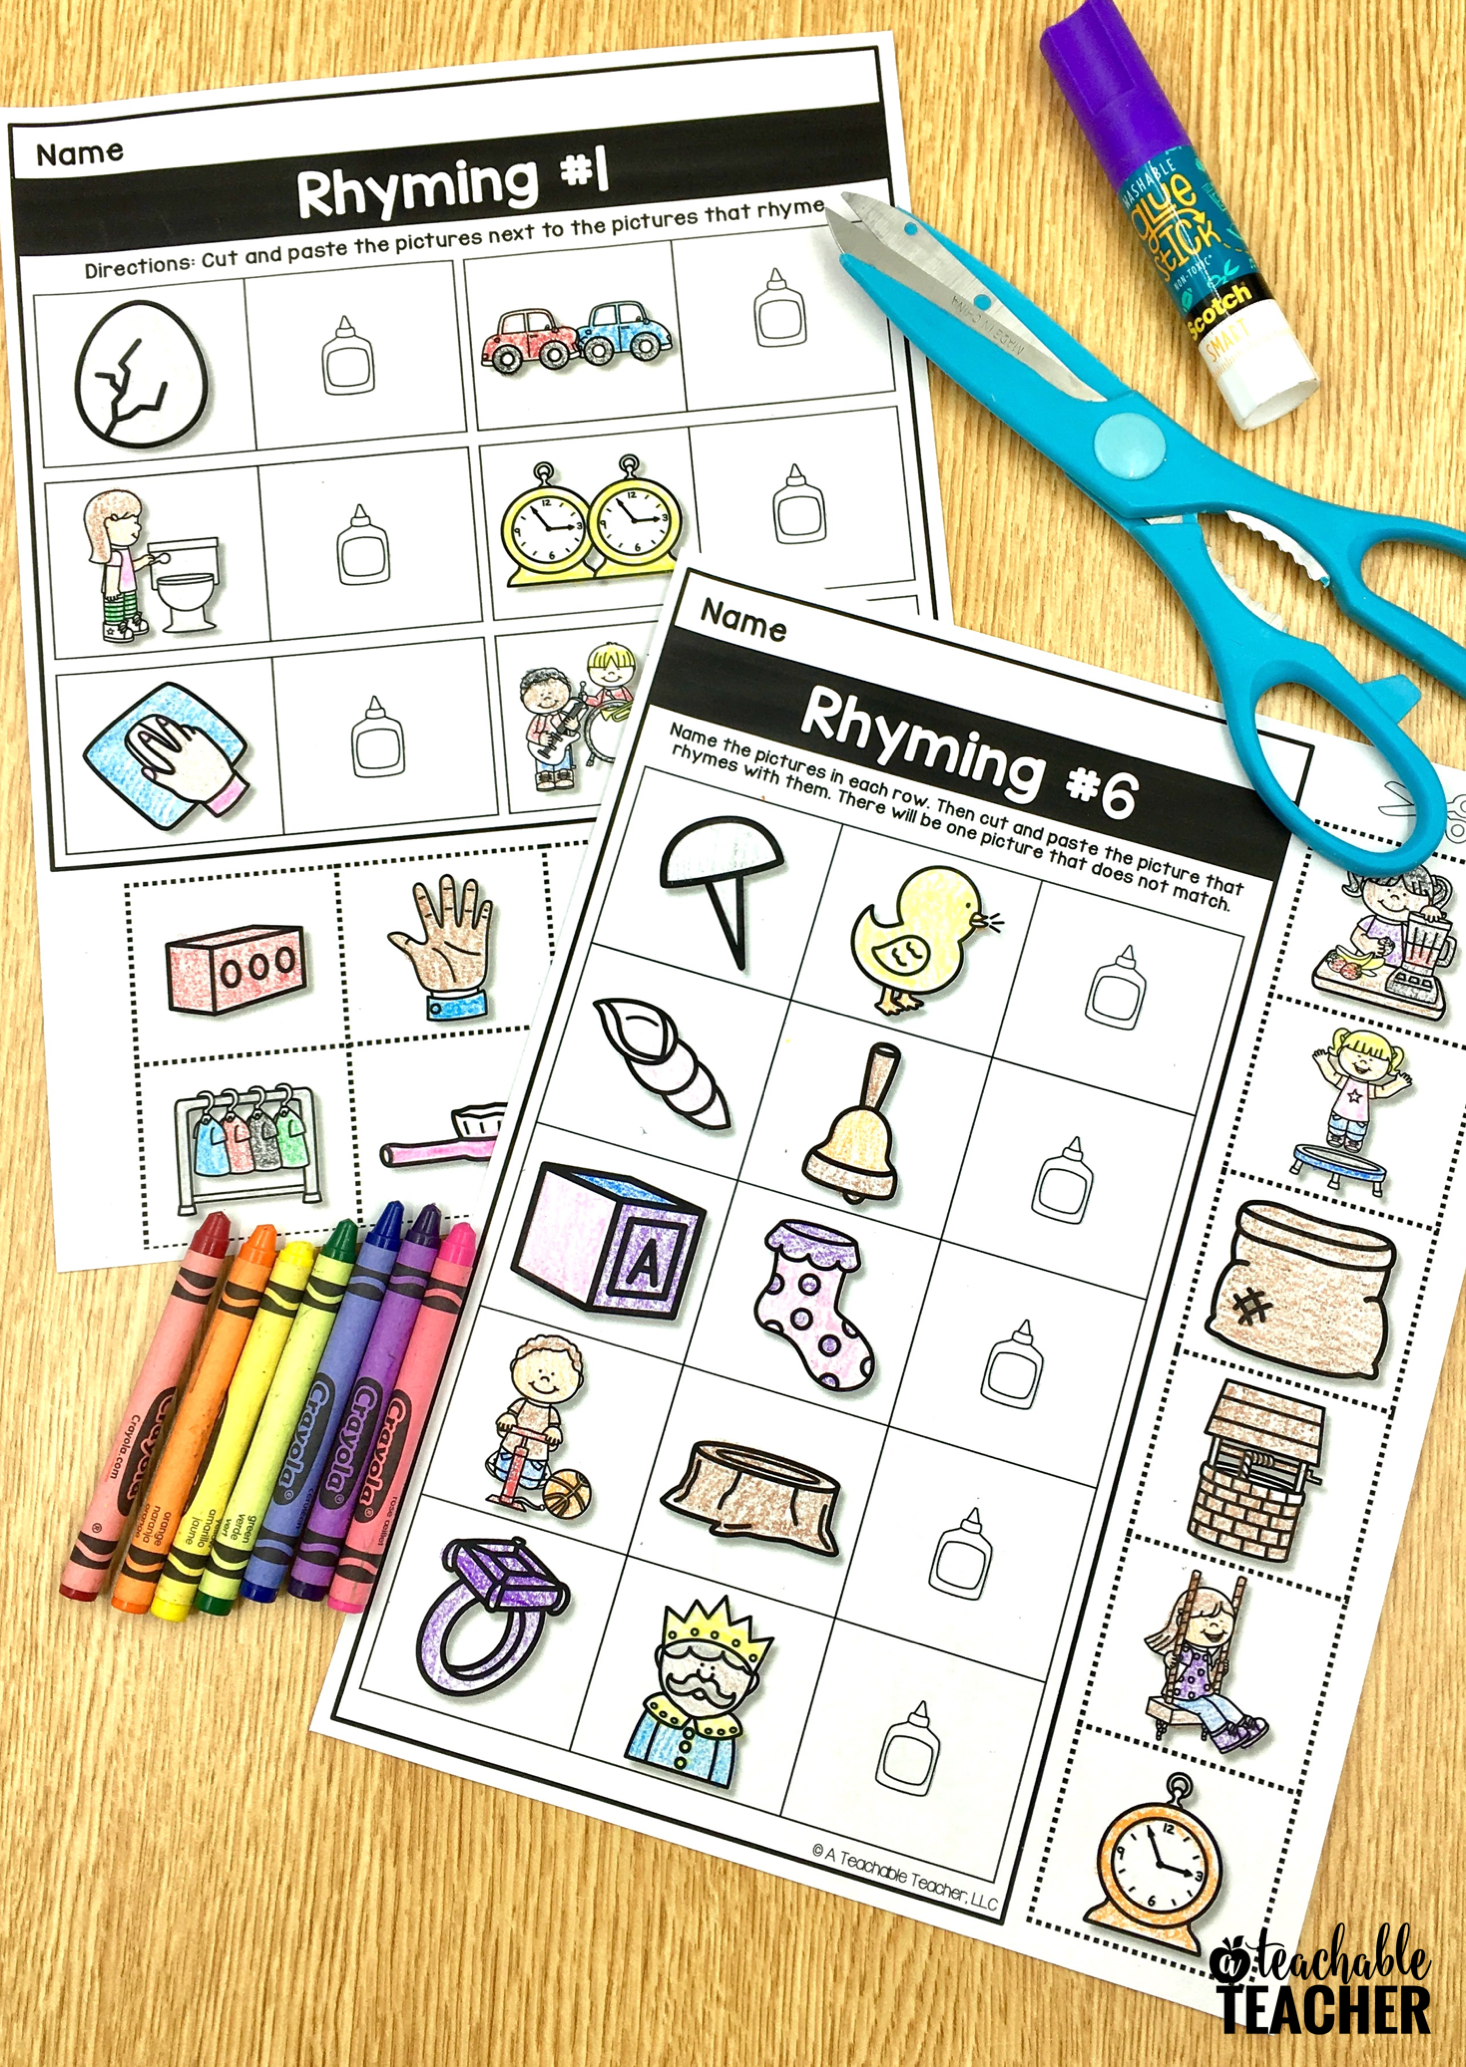 Free Phonemic Awareness Worksheets Interactive And Picture Based Rhyming Activities Preschool Worksheets Phonemic Awareness [ 2067 x 1466 Pixel ]